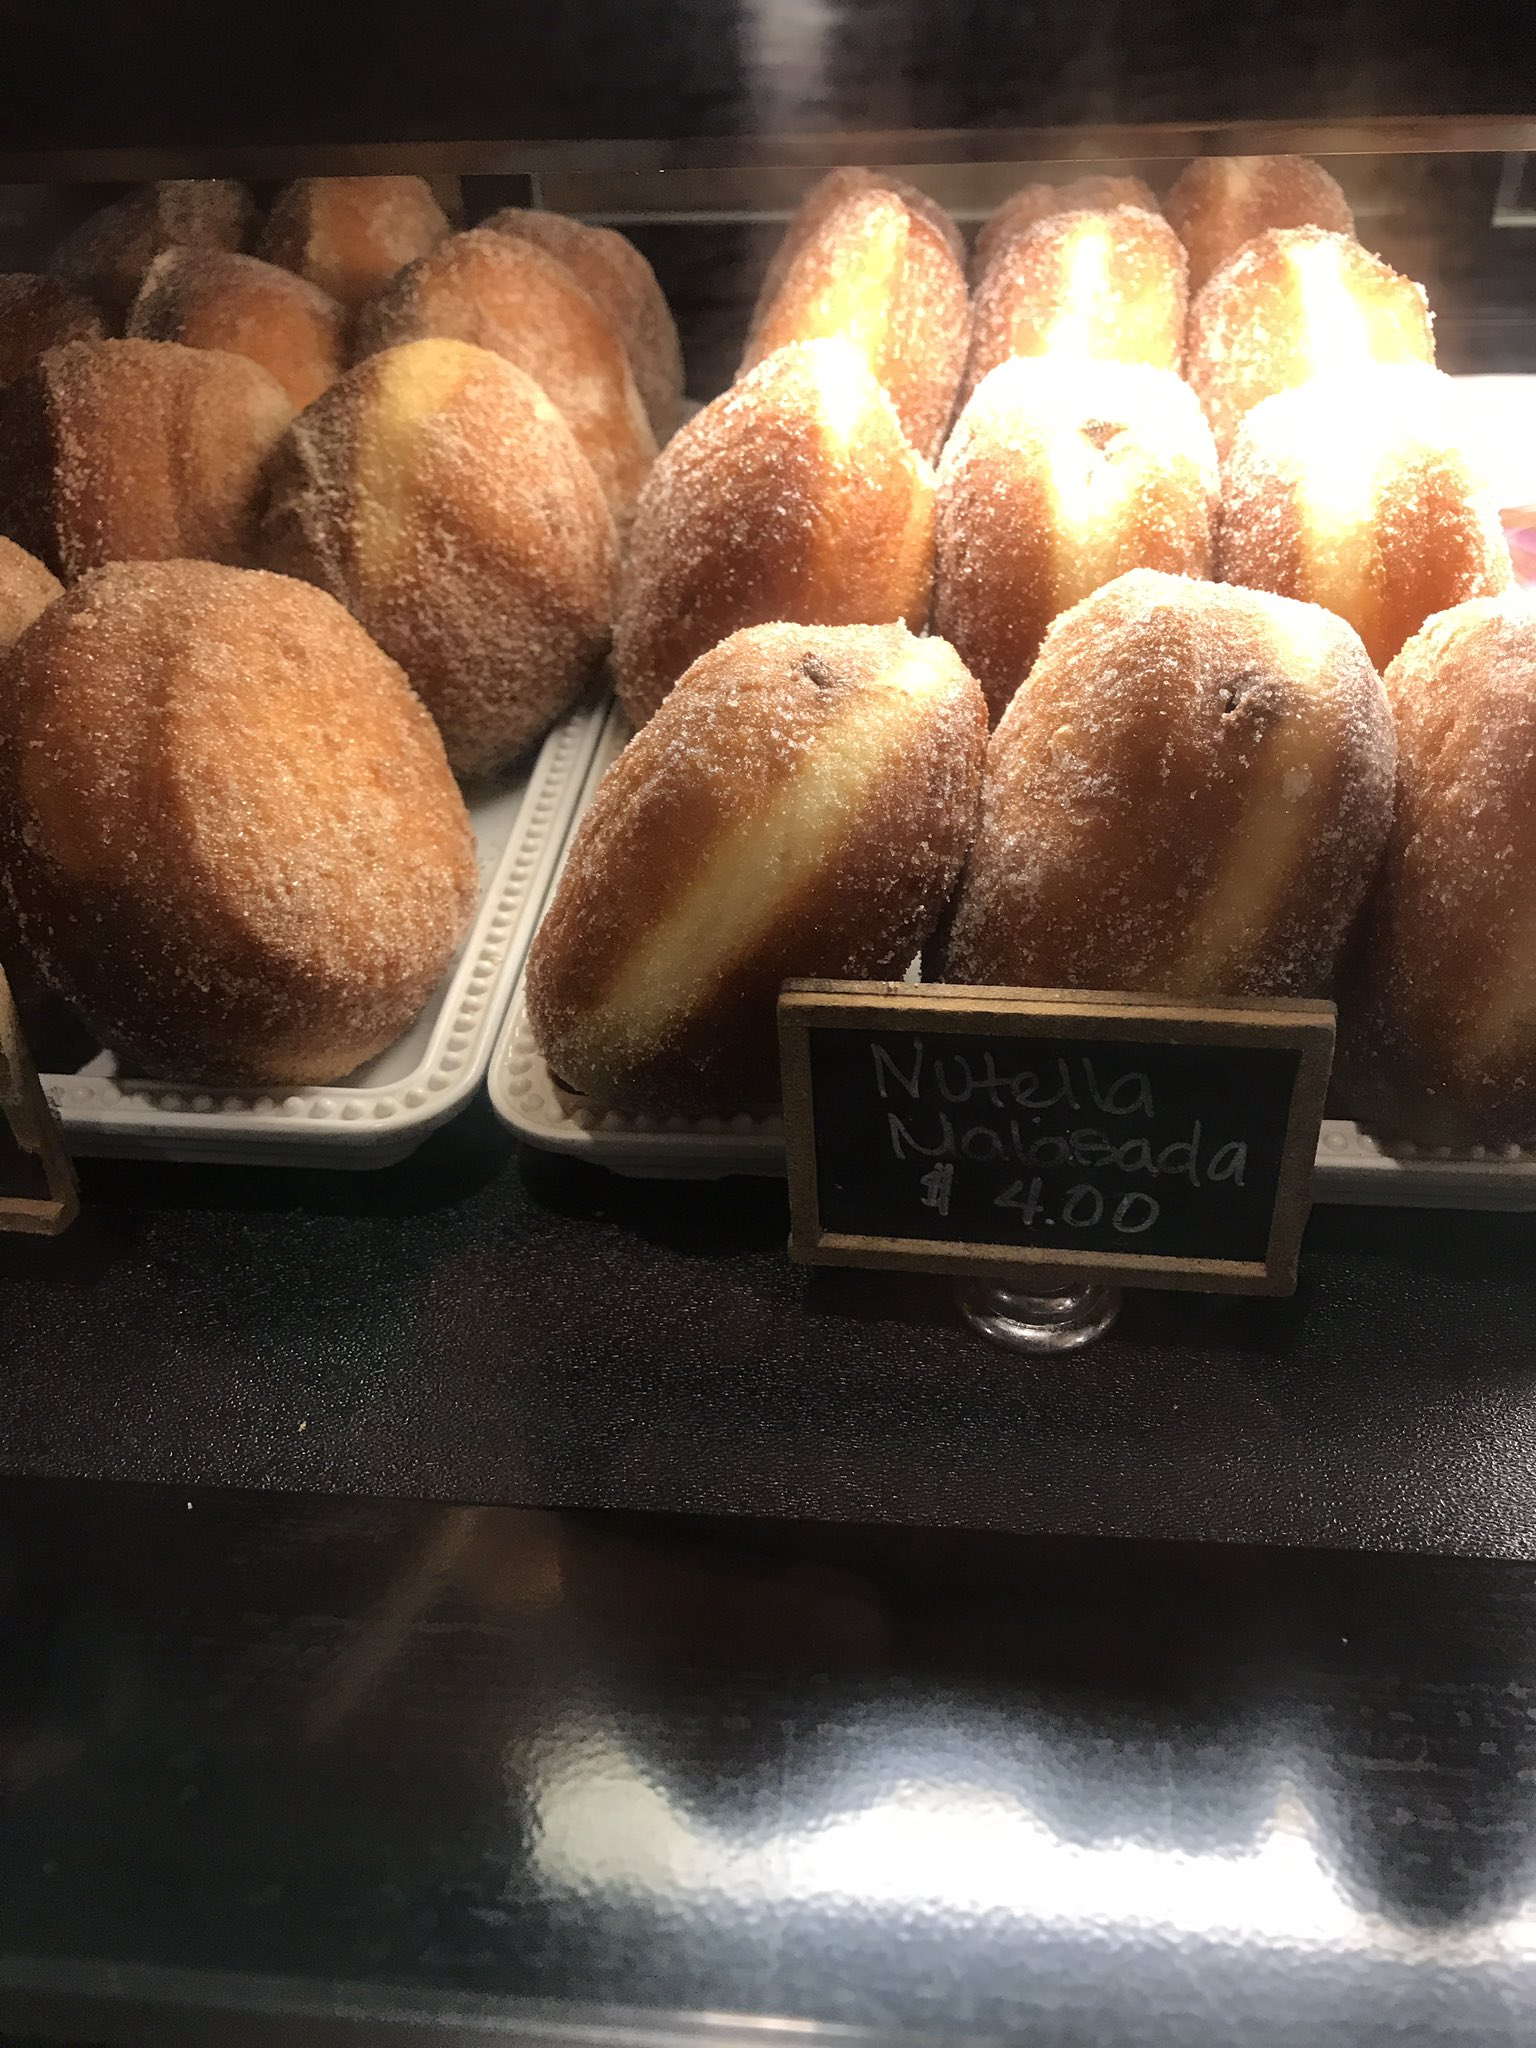 For those #plantbio17 ppl at the Hawaiian Village the Pronto & Pickle has malasadas. Opted for a sandwich myself, so tell me how they are! https://t.co/N2QiZitSGM